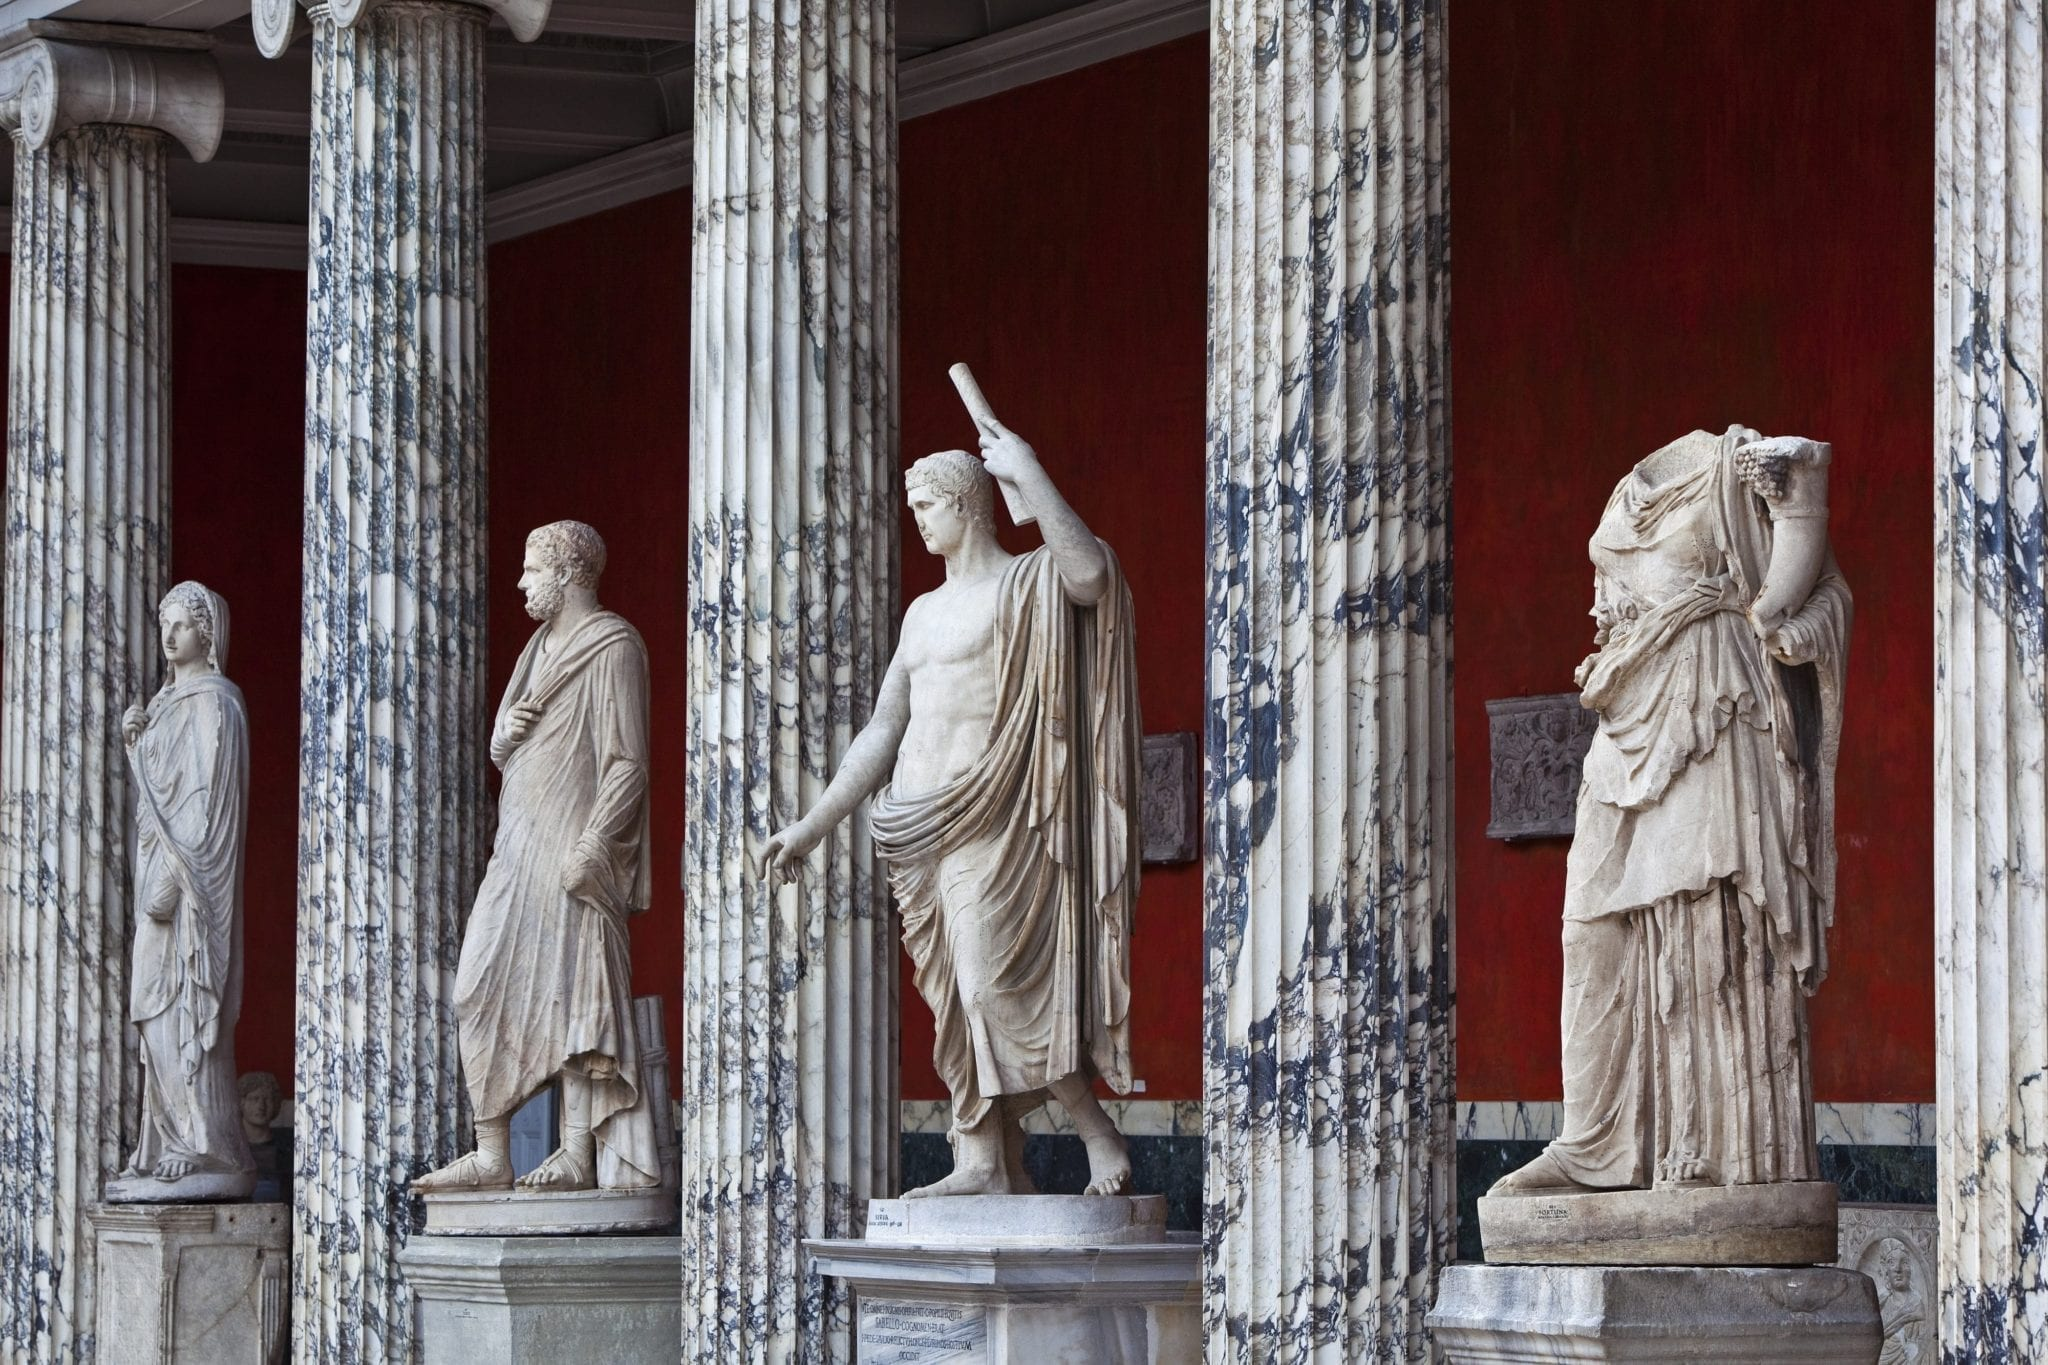 Image of statues from one of the rooms in Glyptoteket